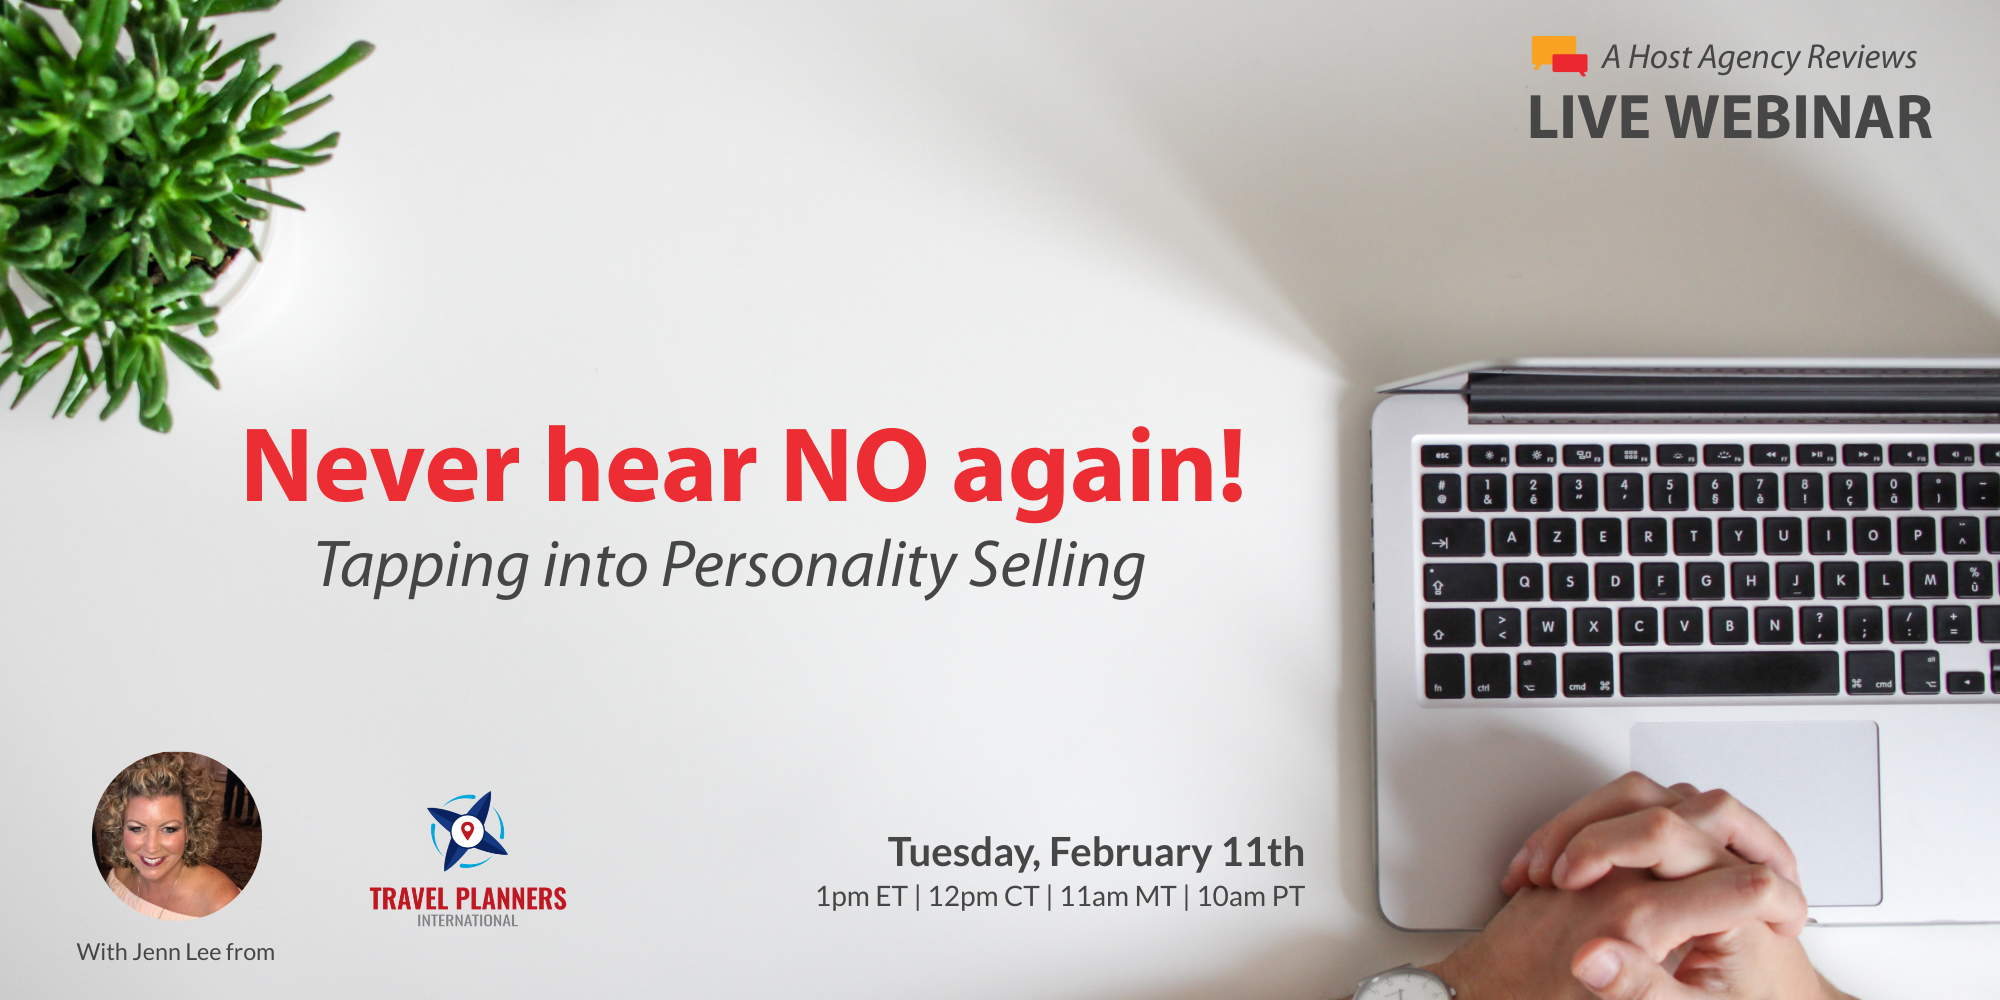 Never hear NO again! Tapping into Personality Selling